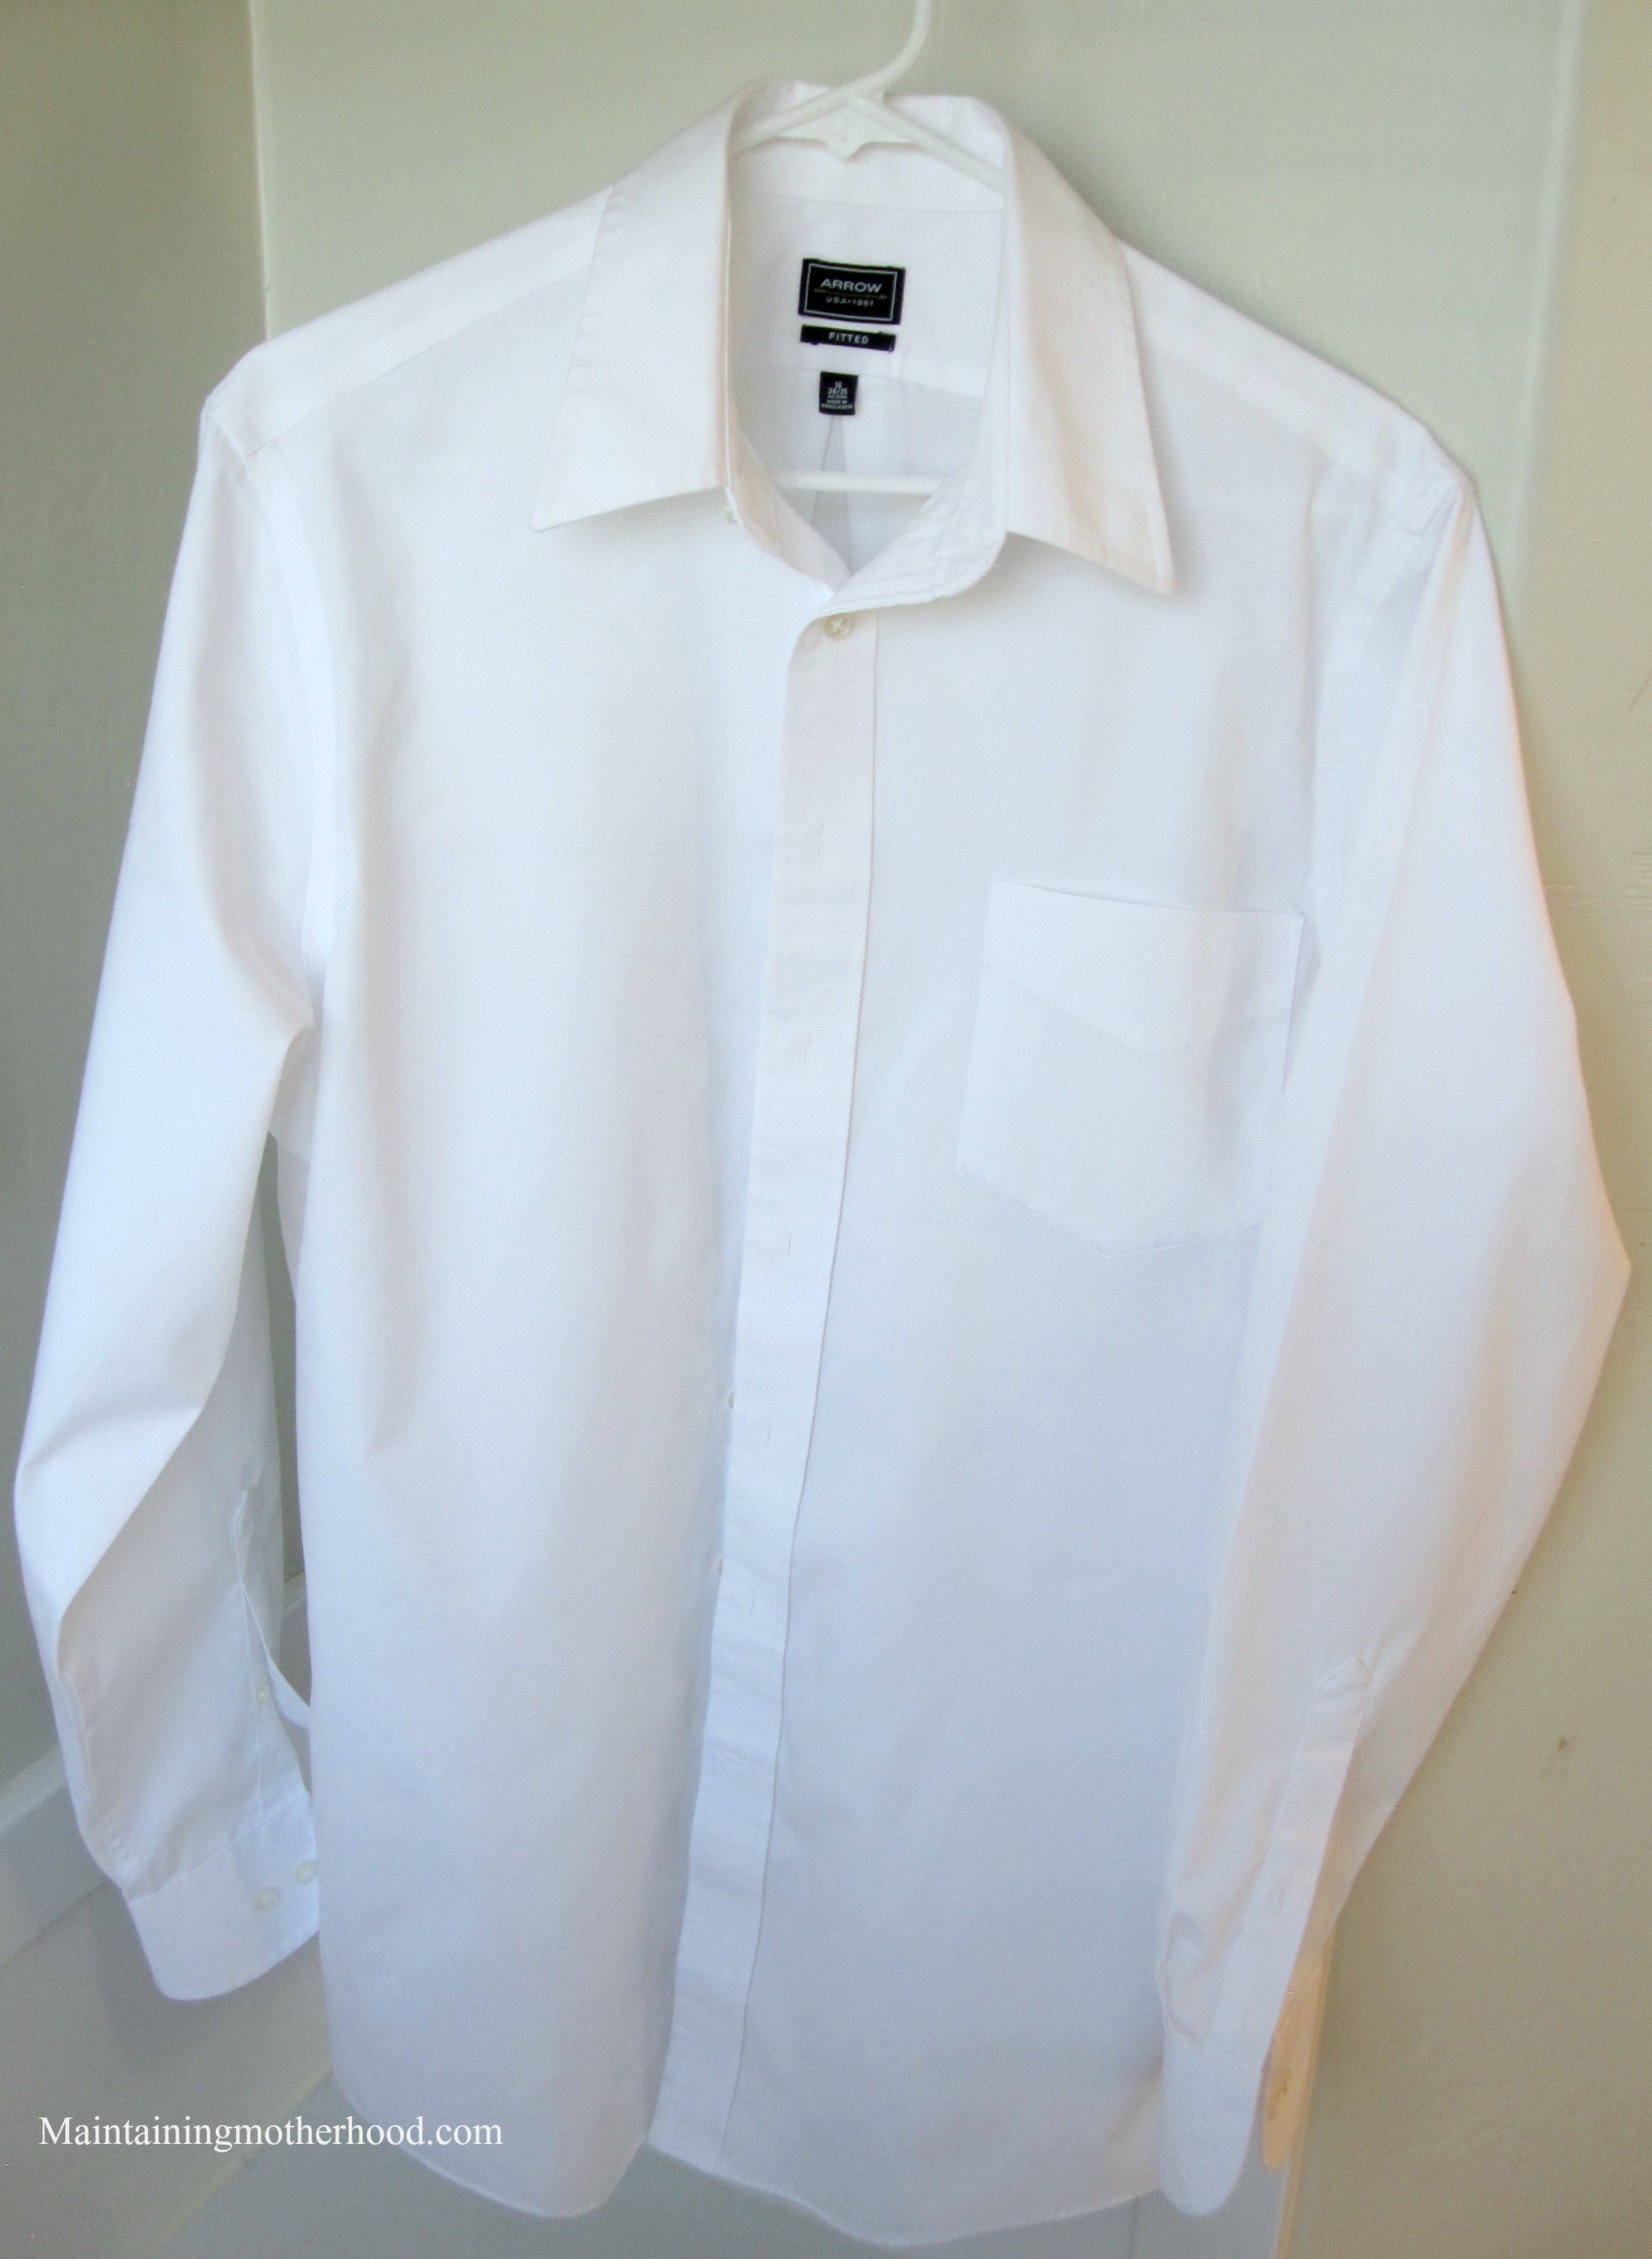 How to starch a shirt like the dry cleaners for Starch on dress shirts